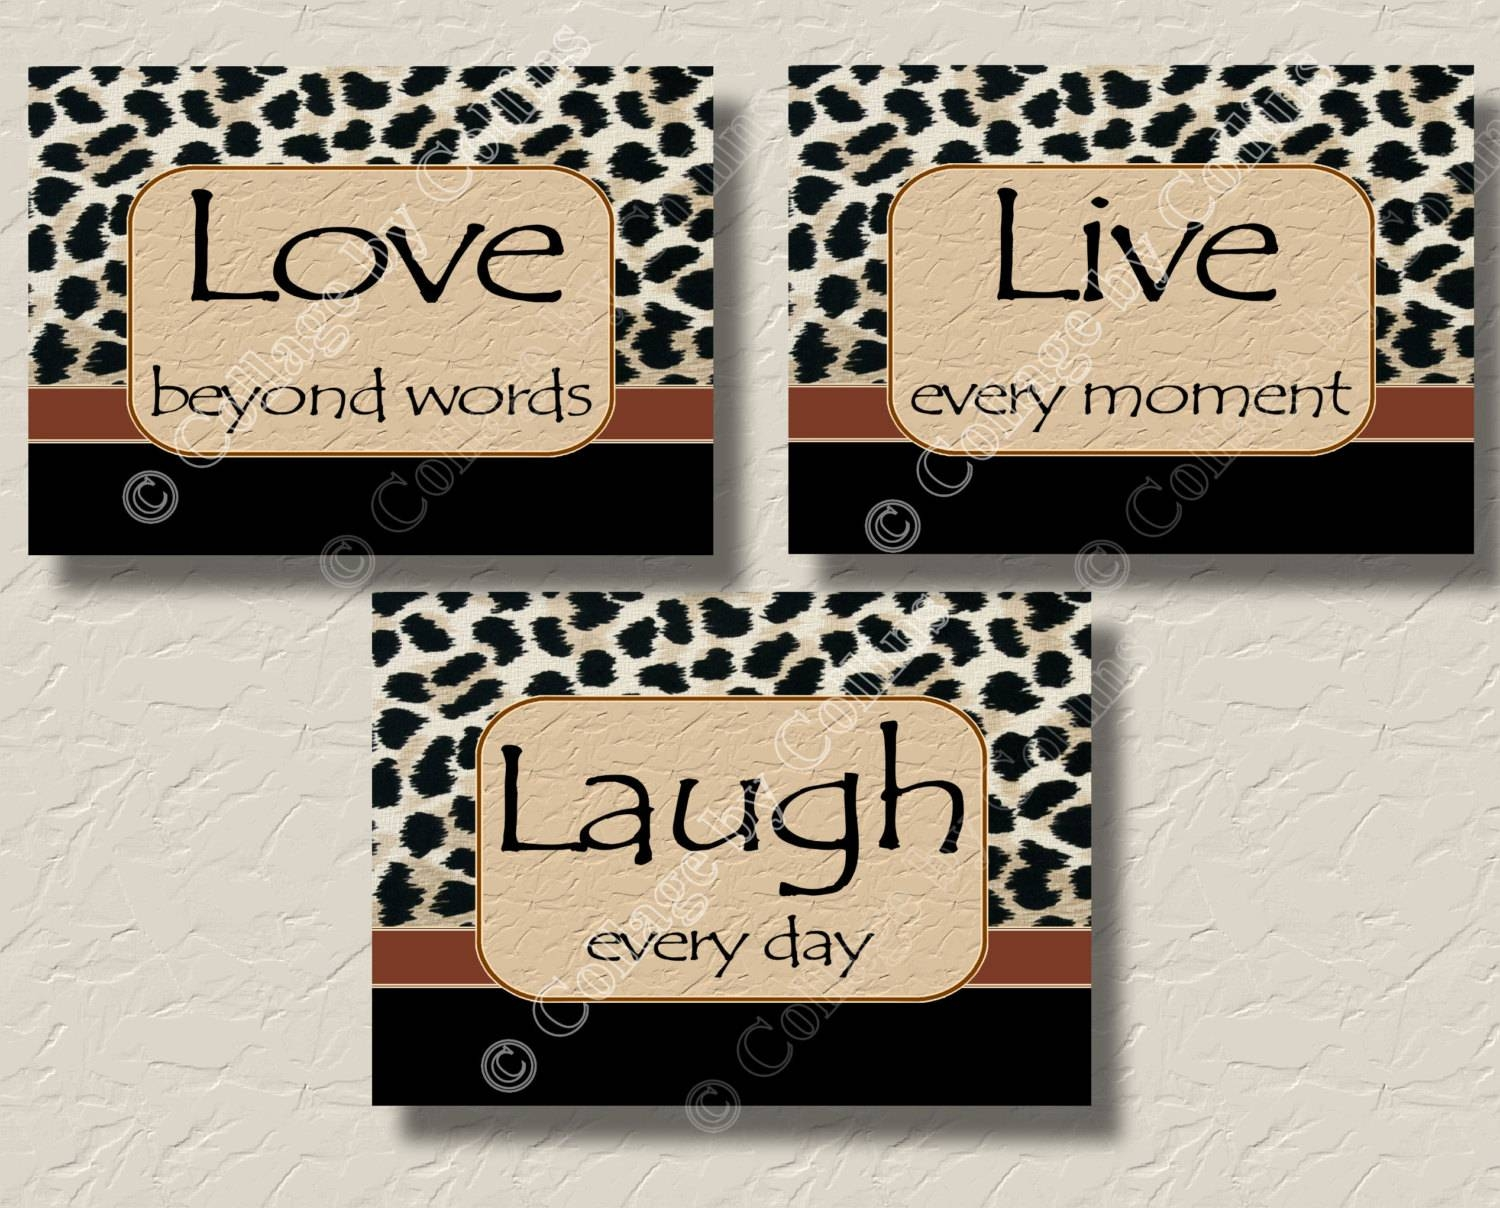 Leopard Print Cheetah Wall Art Picture Prints Live Love Laugh In Most Up To Date Leopard Print Wall Art (View 14 of 25)